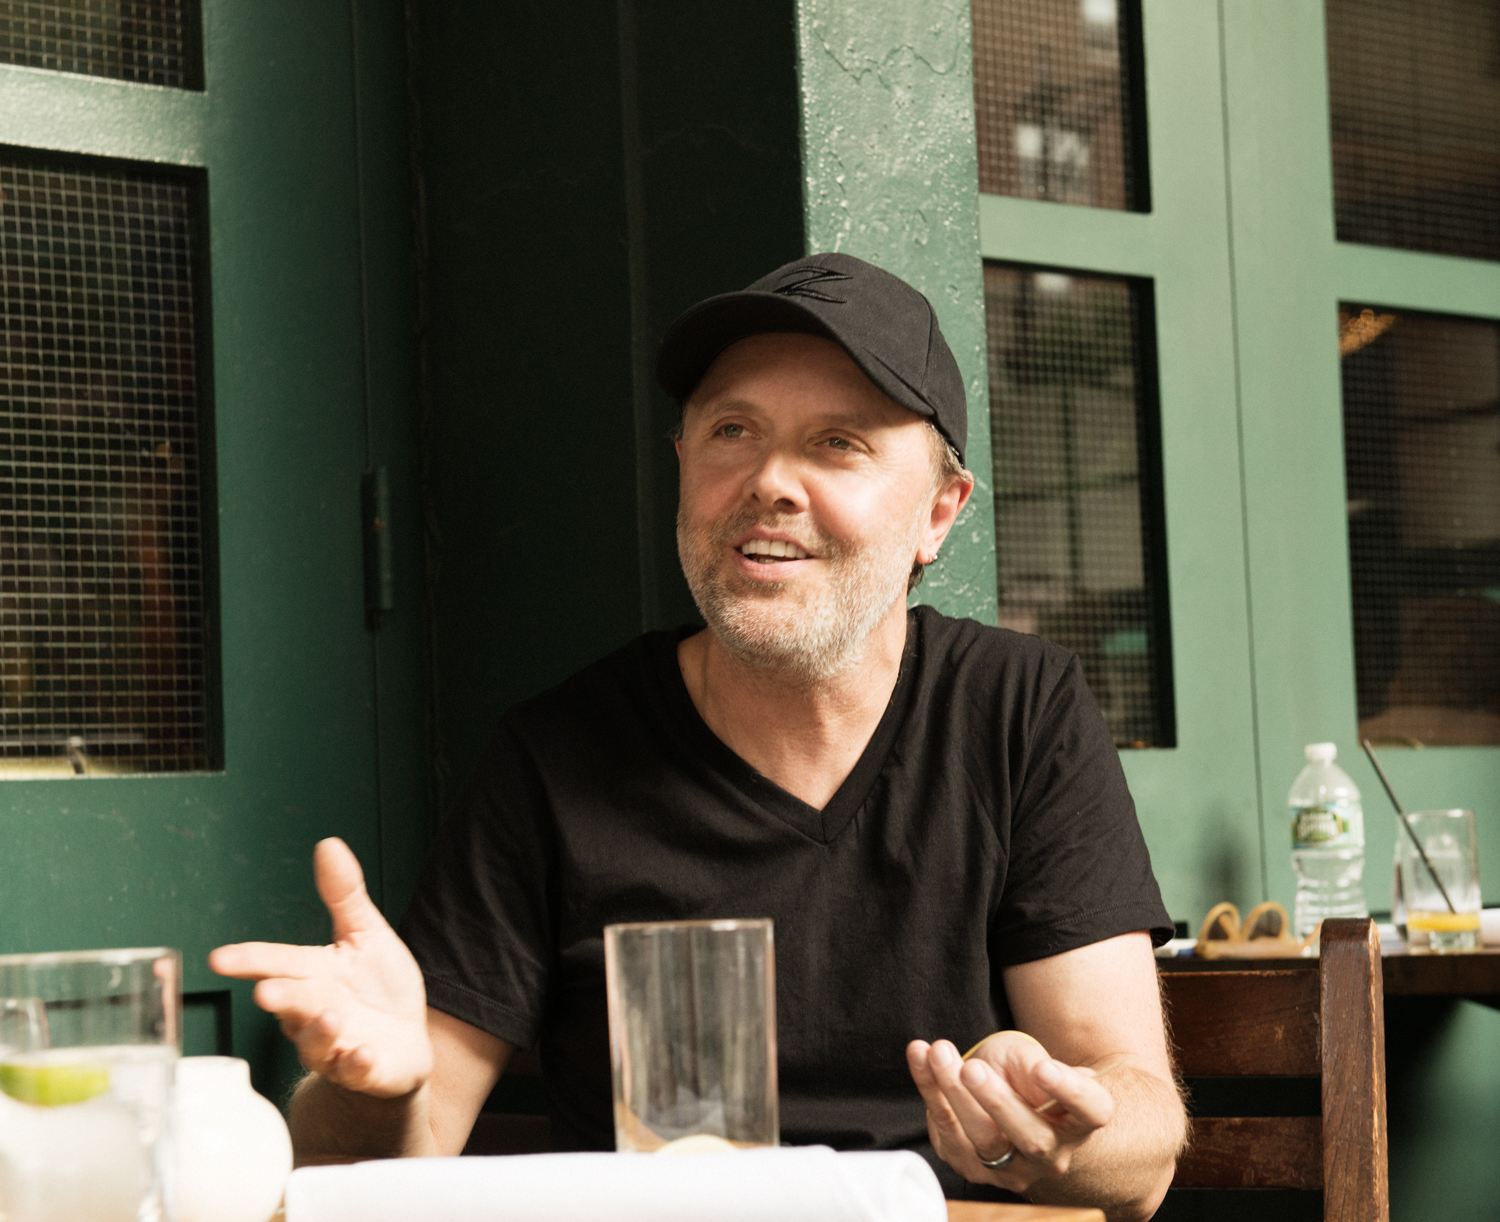 I Went on a First Date with Metallica's Lars Ulrich - VICE